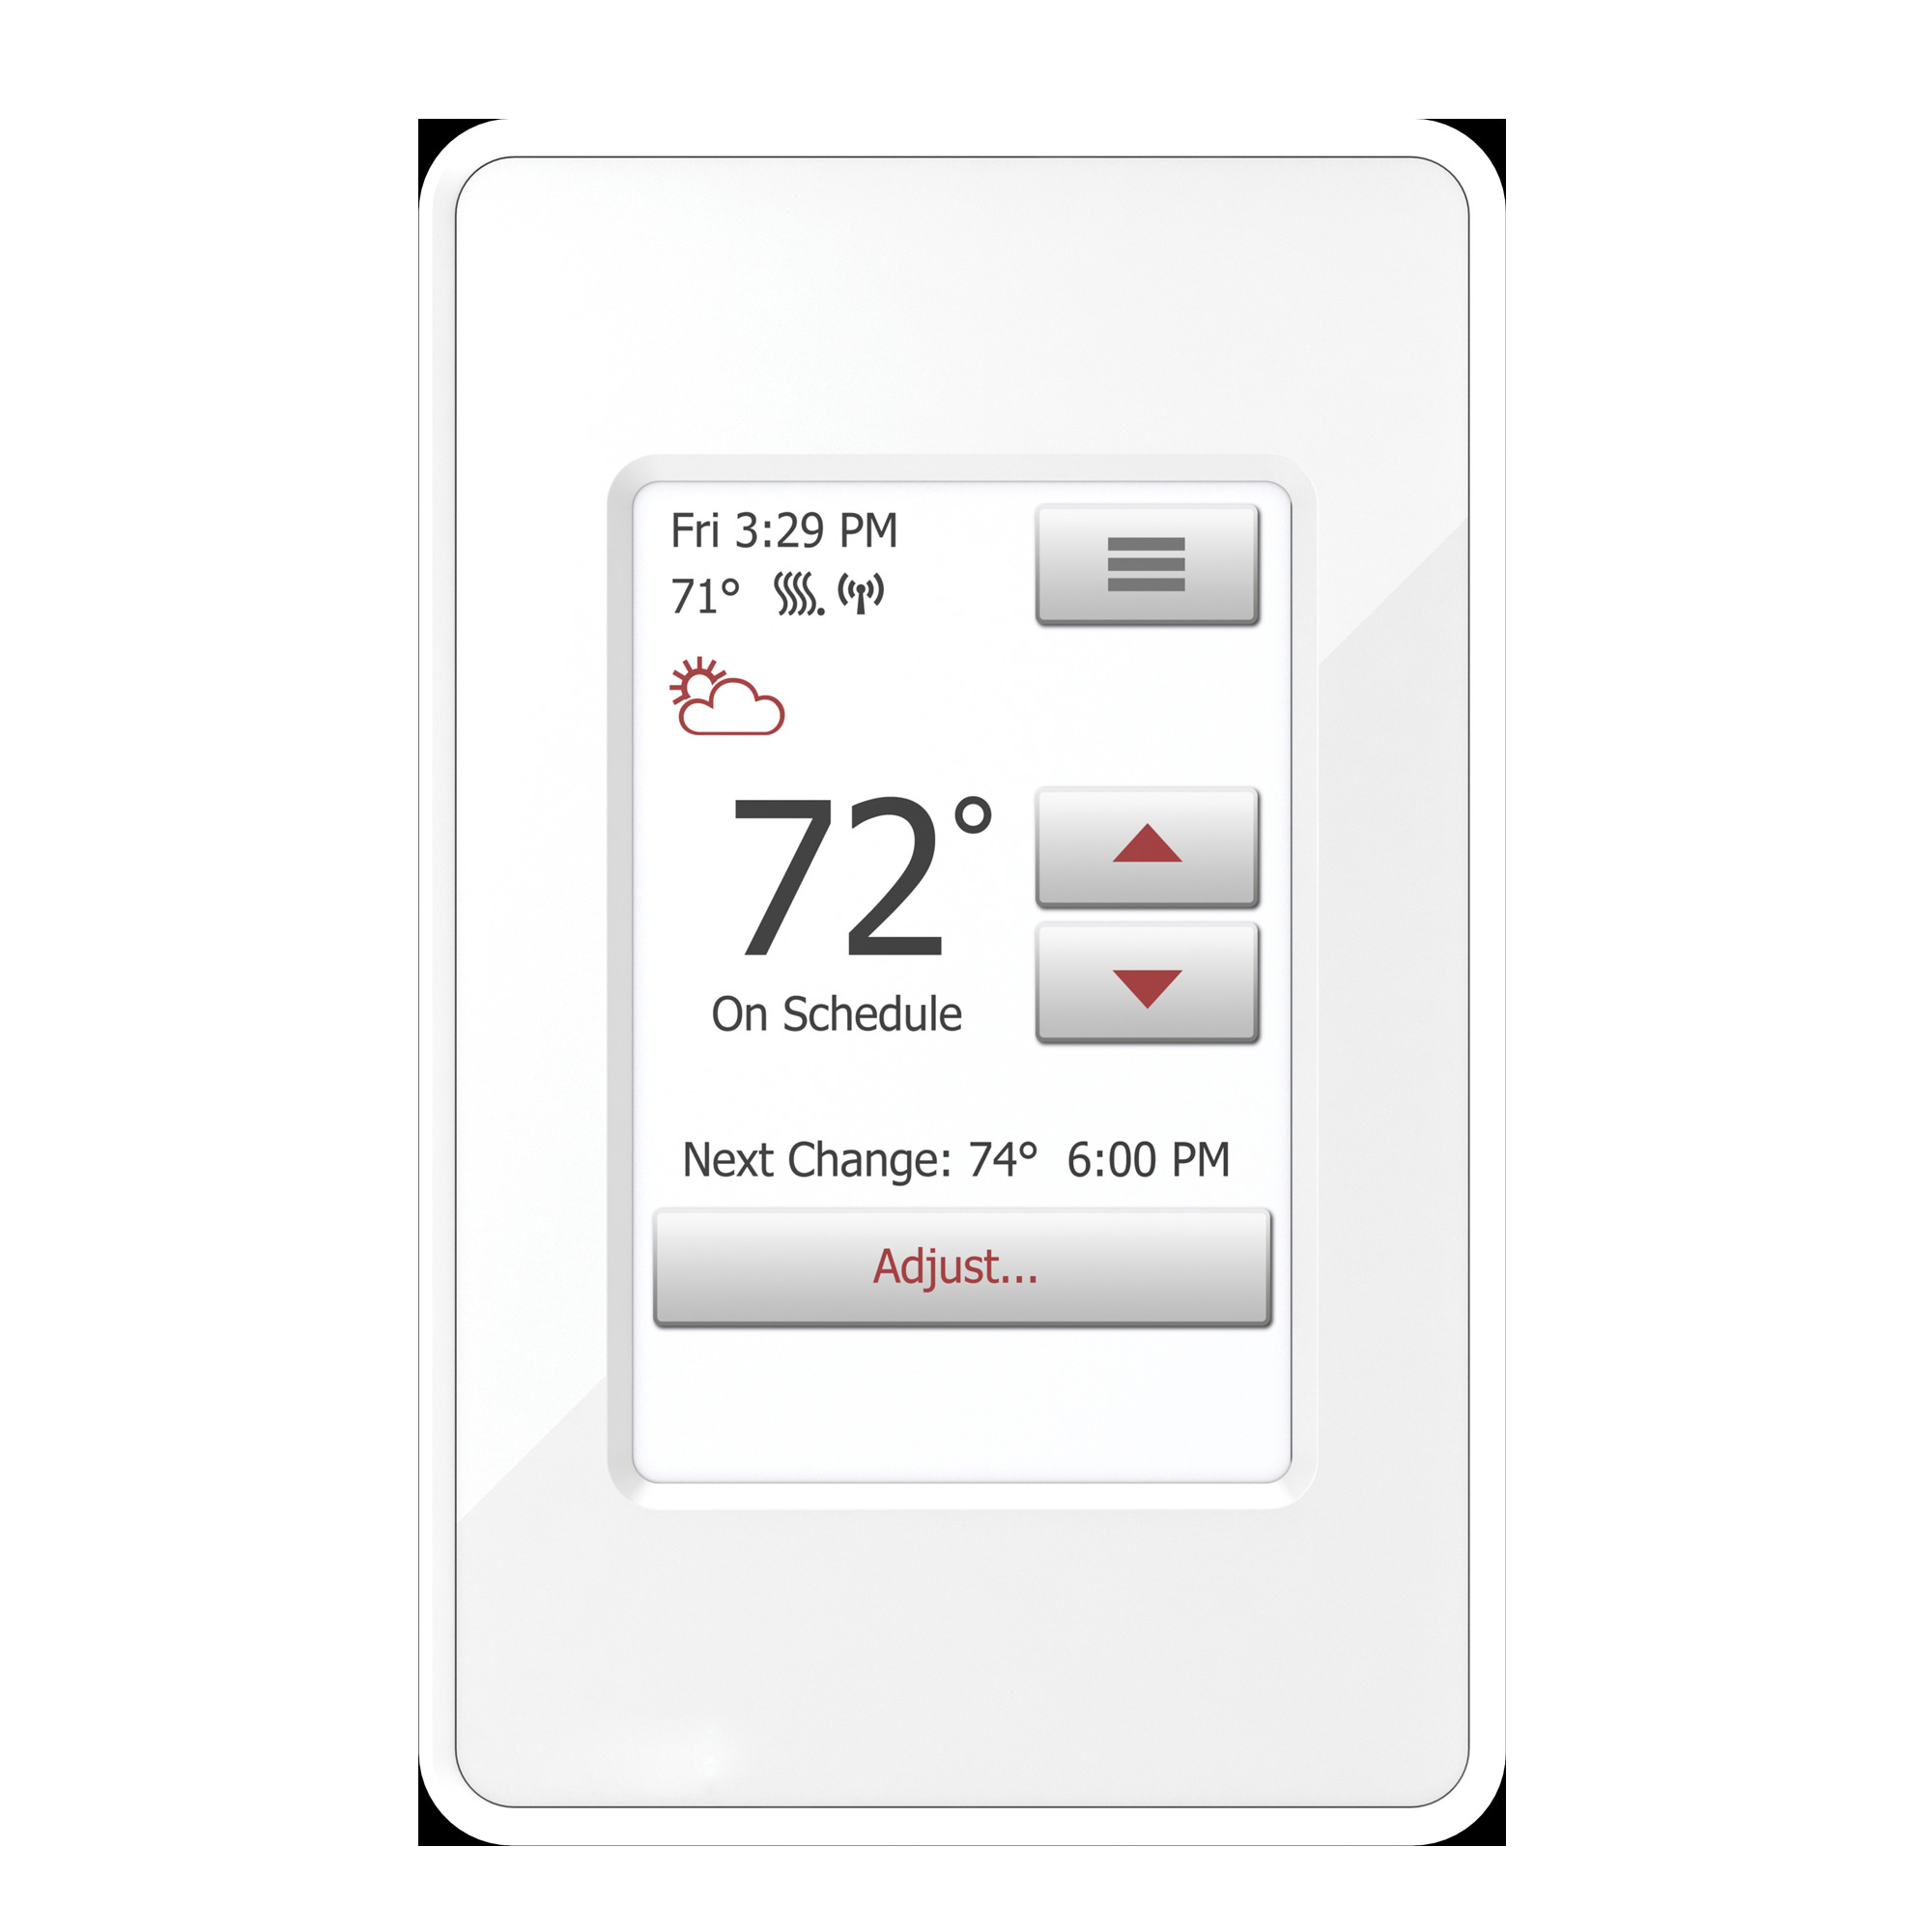 nSpire Touch WiFi: WiFi and Touch Thermostat. Programmable, Class A GFCI, w/Floor Sensor